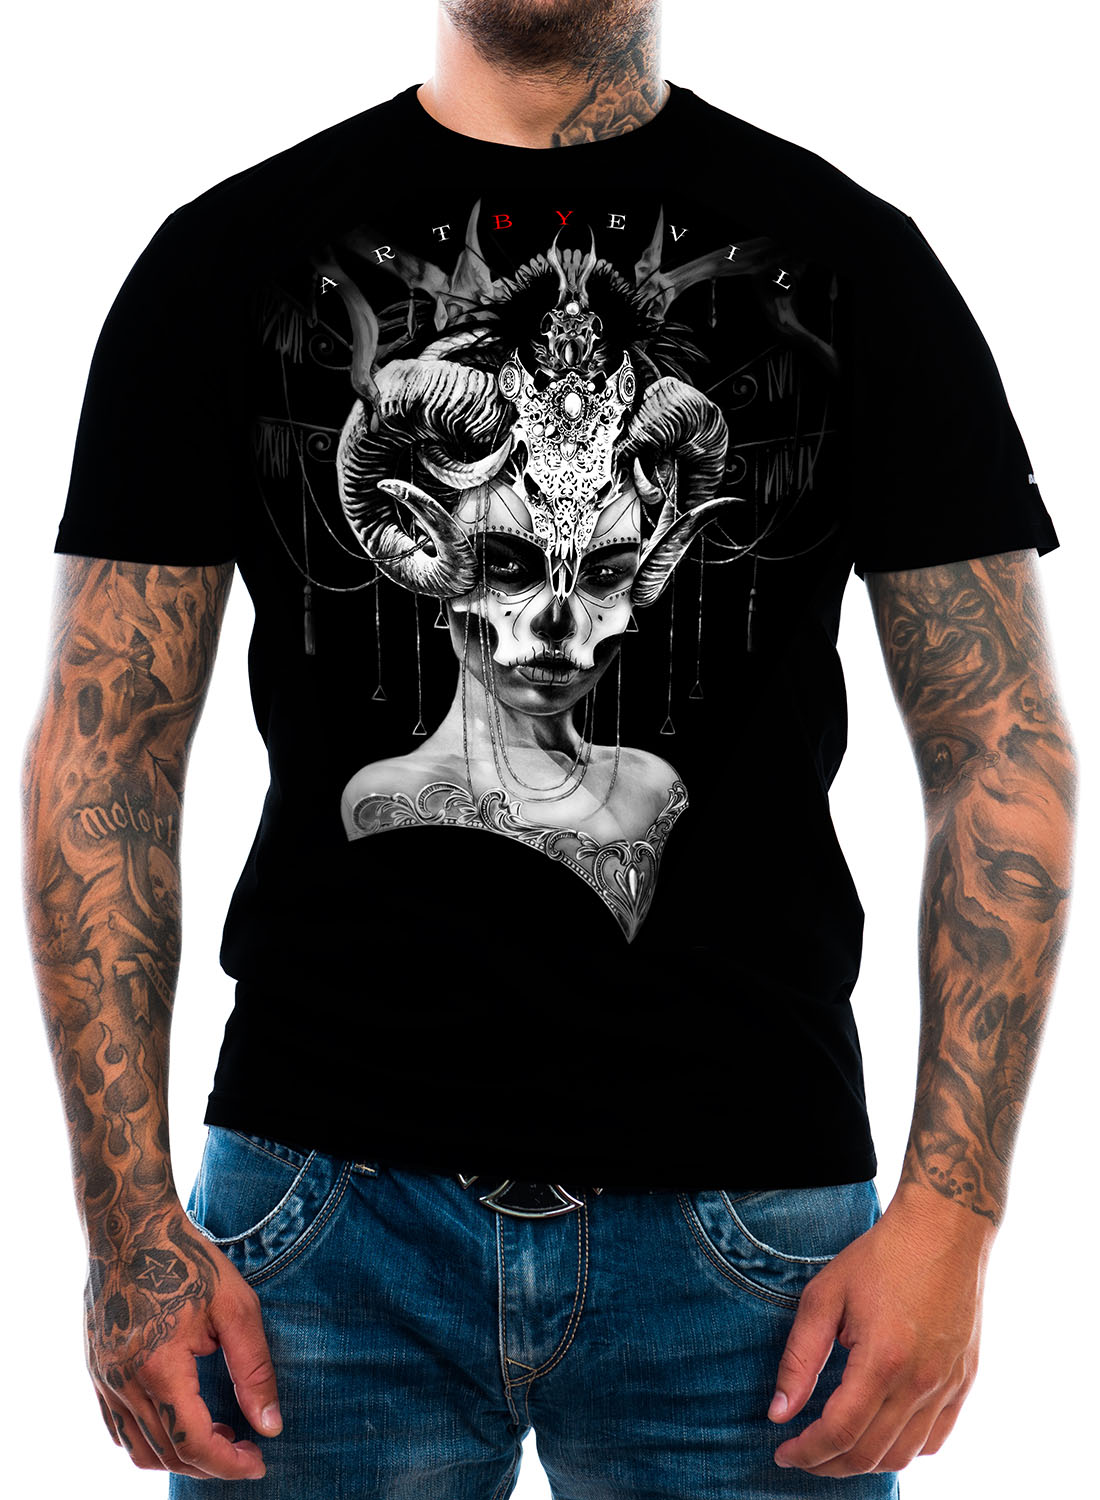 eca3cc9d8 T-shirts: Day of the DeadT-shirt